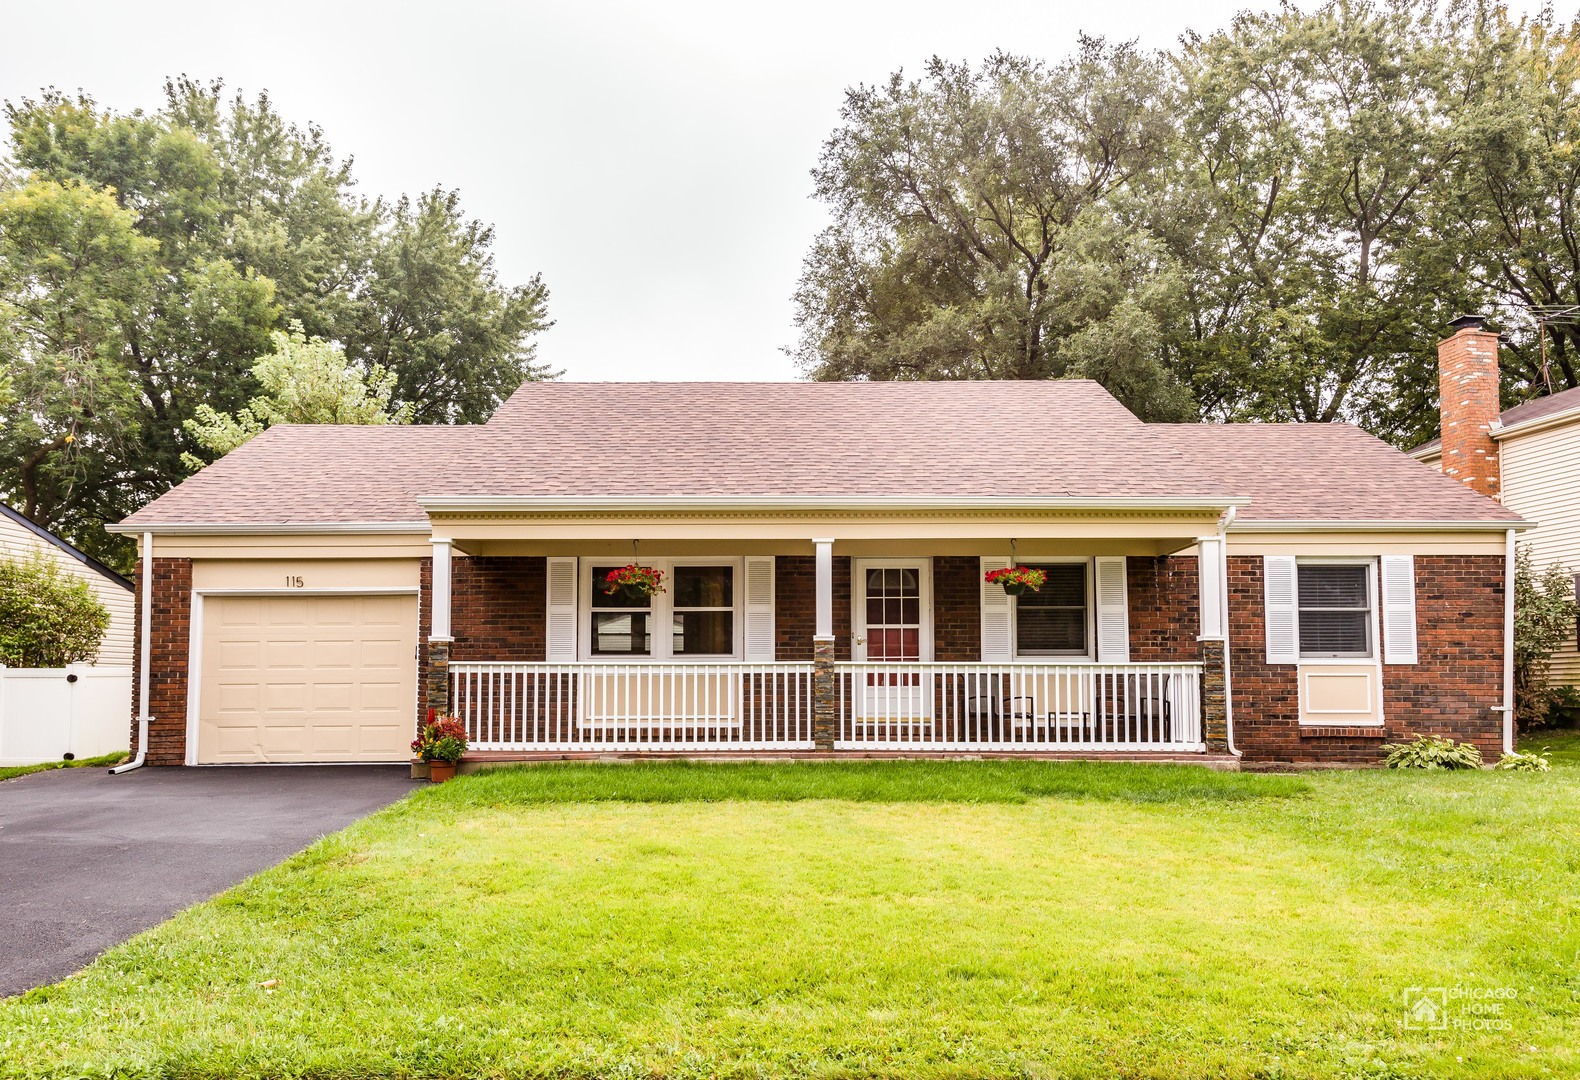 115 Stonegate Road, Buffalo Grove in Cook County, IL 60089 Home for Sale